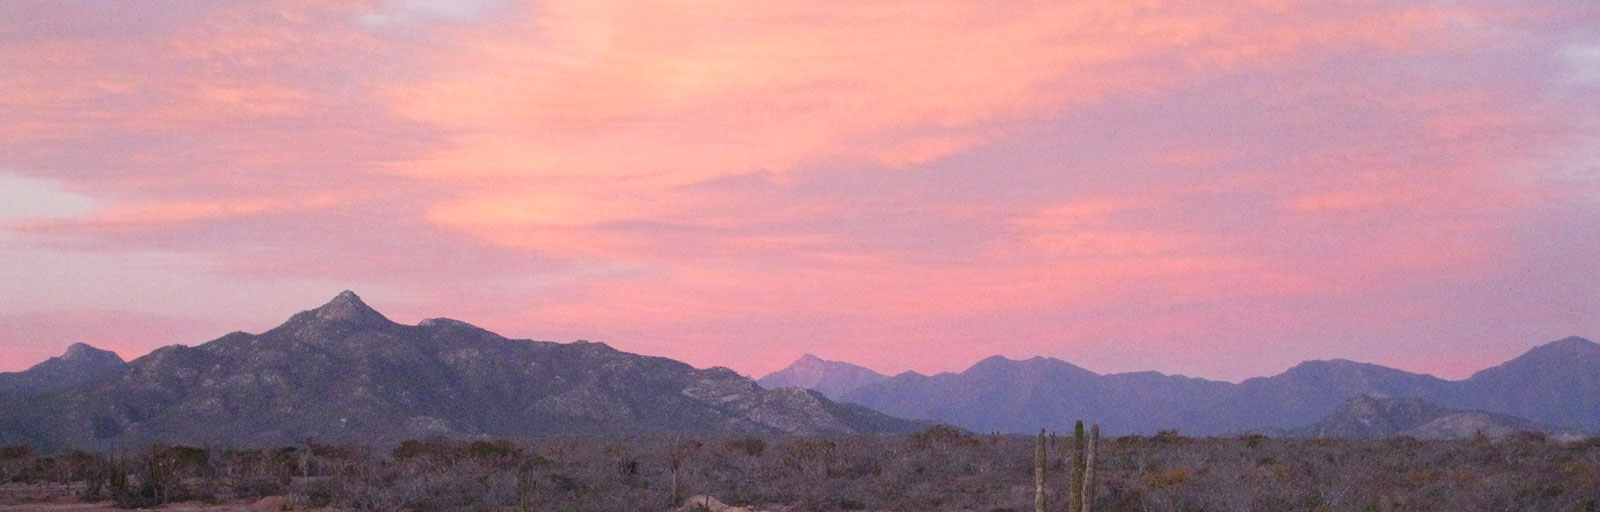 Hiking & Yoga Retreat in Mexico: Stunning Sunset over the Mountains